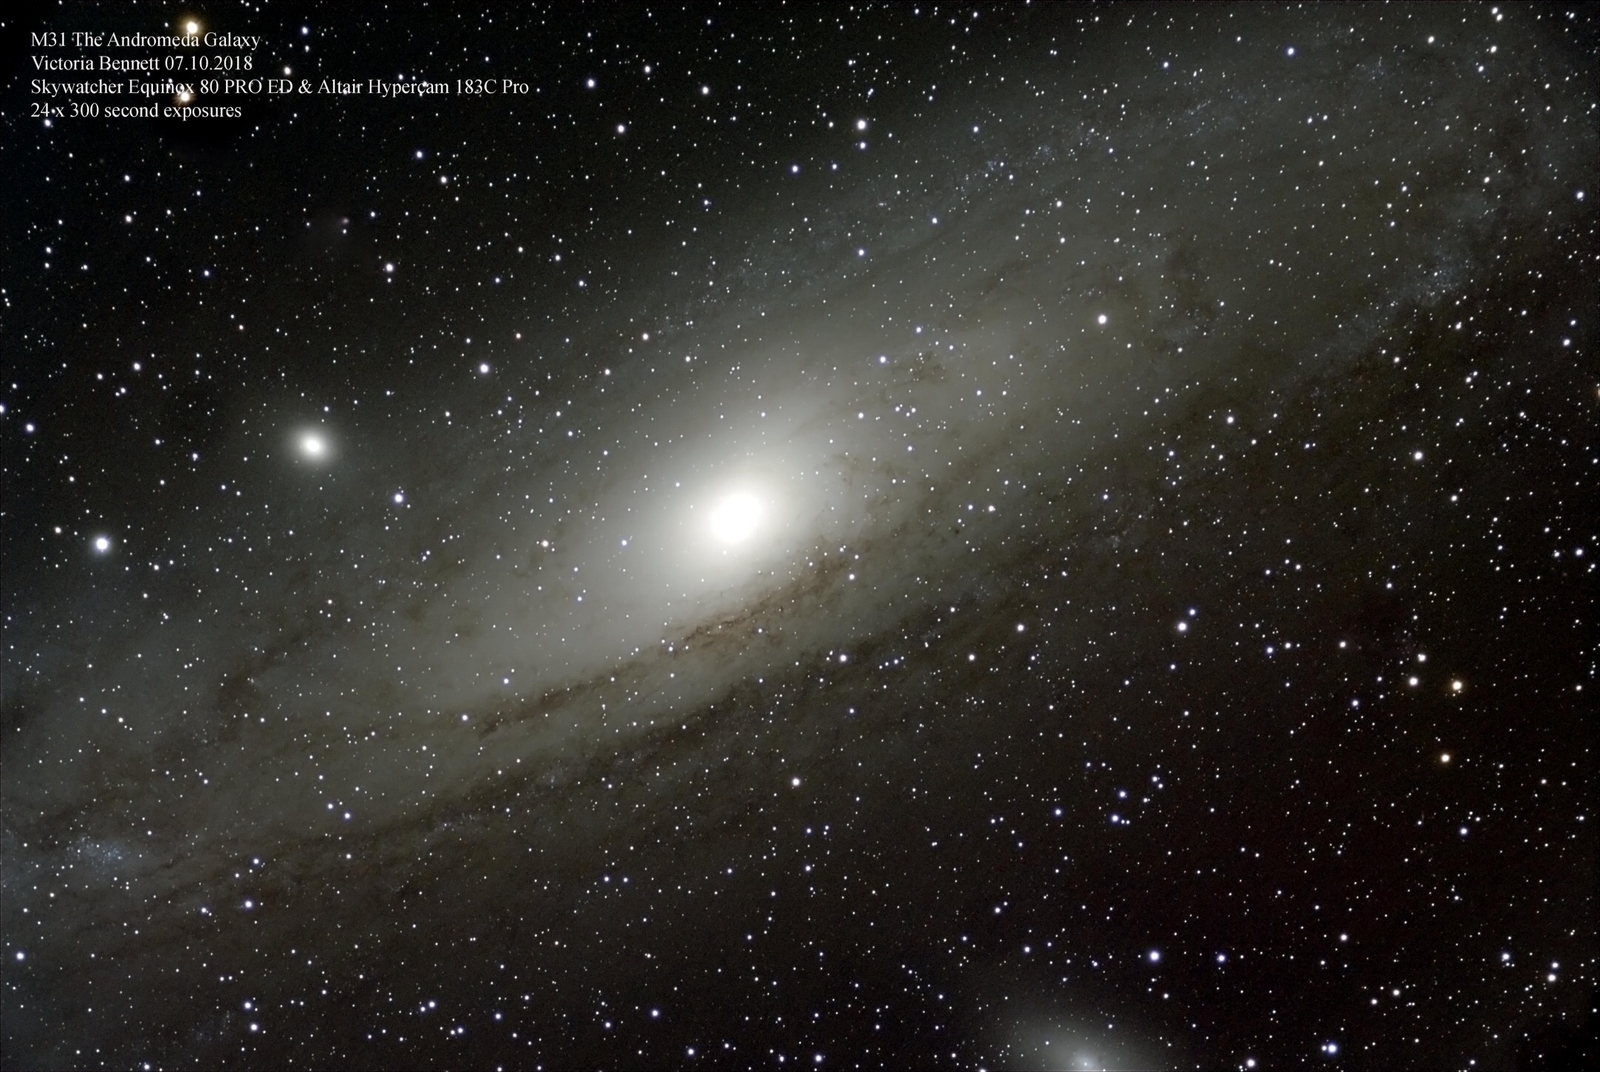 M31 The Andromeda Galaxy 07.10.2018